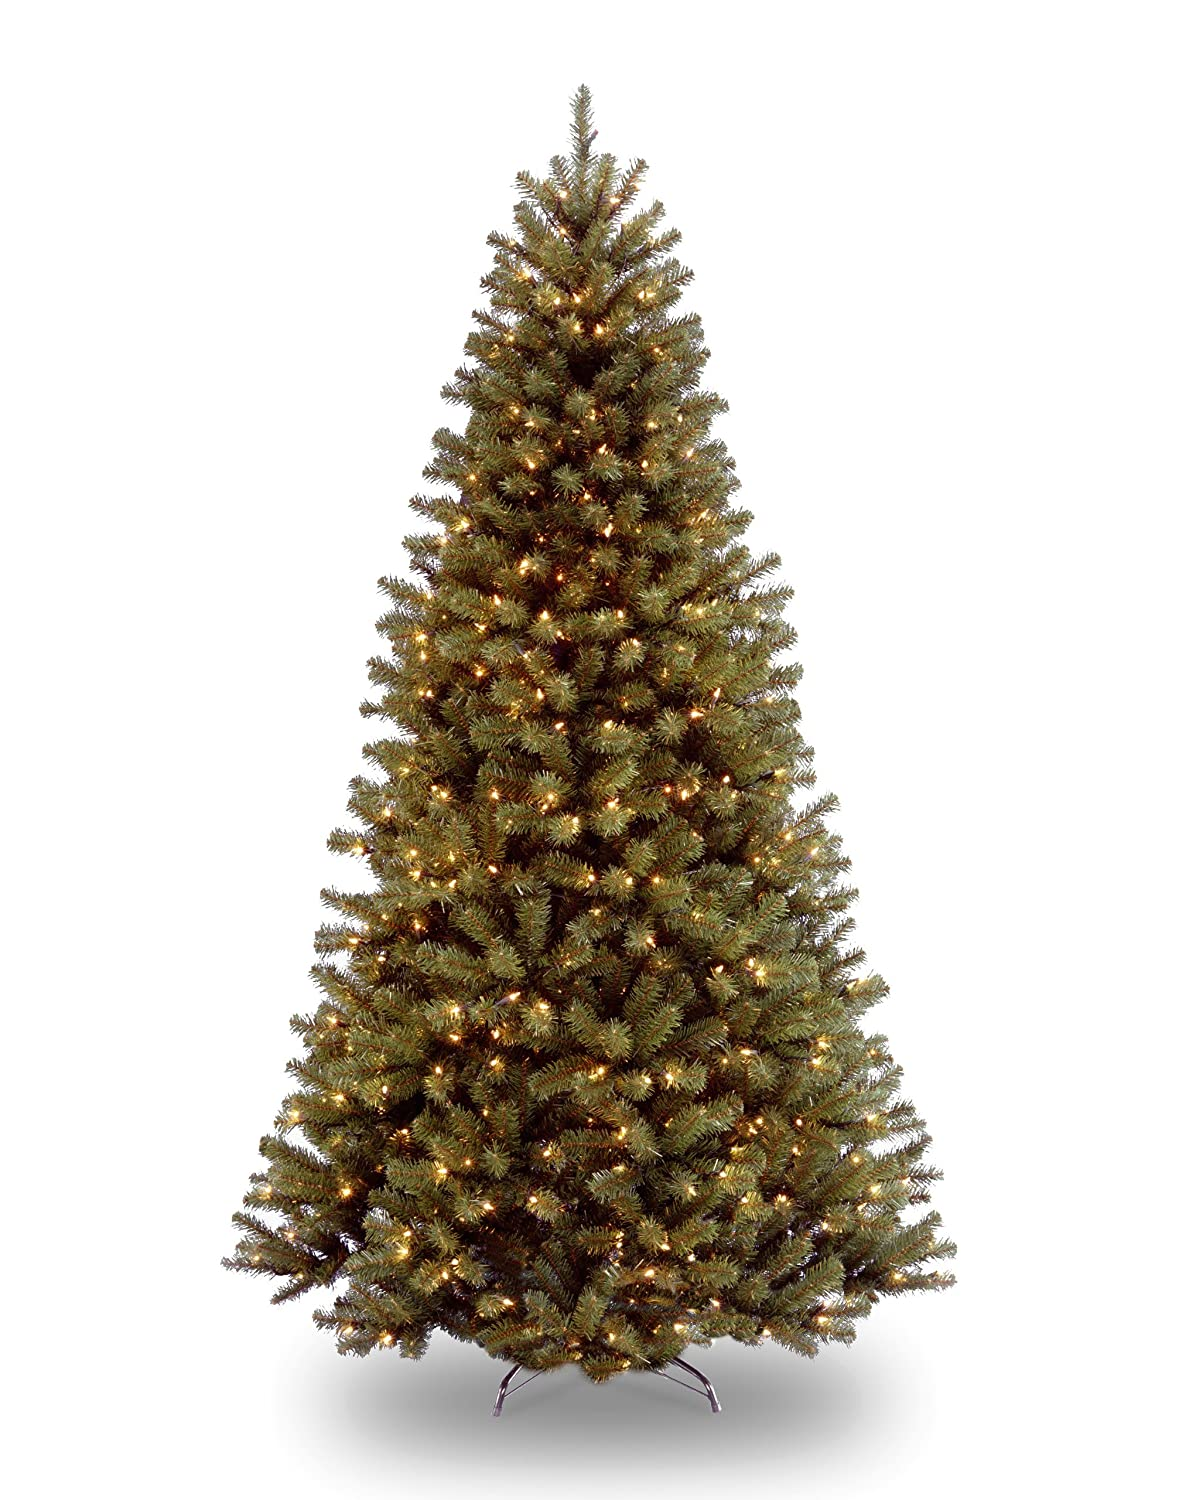 National Tree 7 1/2' North Valley Spruce Tree, Hinged, 550 Low Voltage Dual Color LED Lights with On/Off Switch (NRV7-300LD-75S) national tree company 122 31epedg40 pedd1 706 40